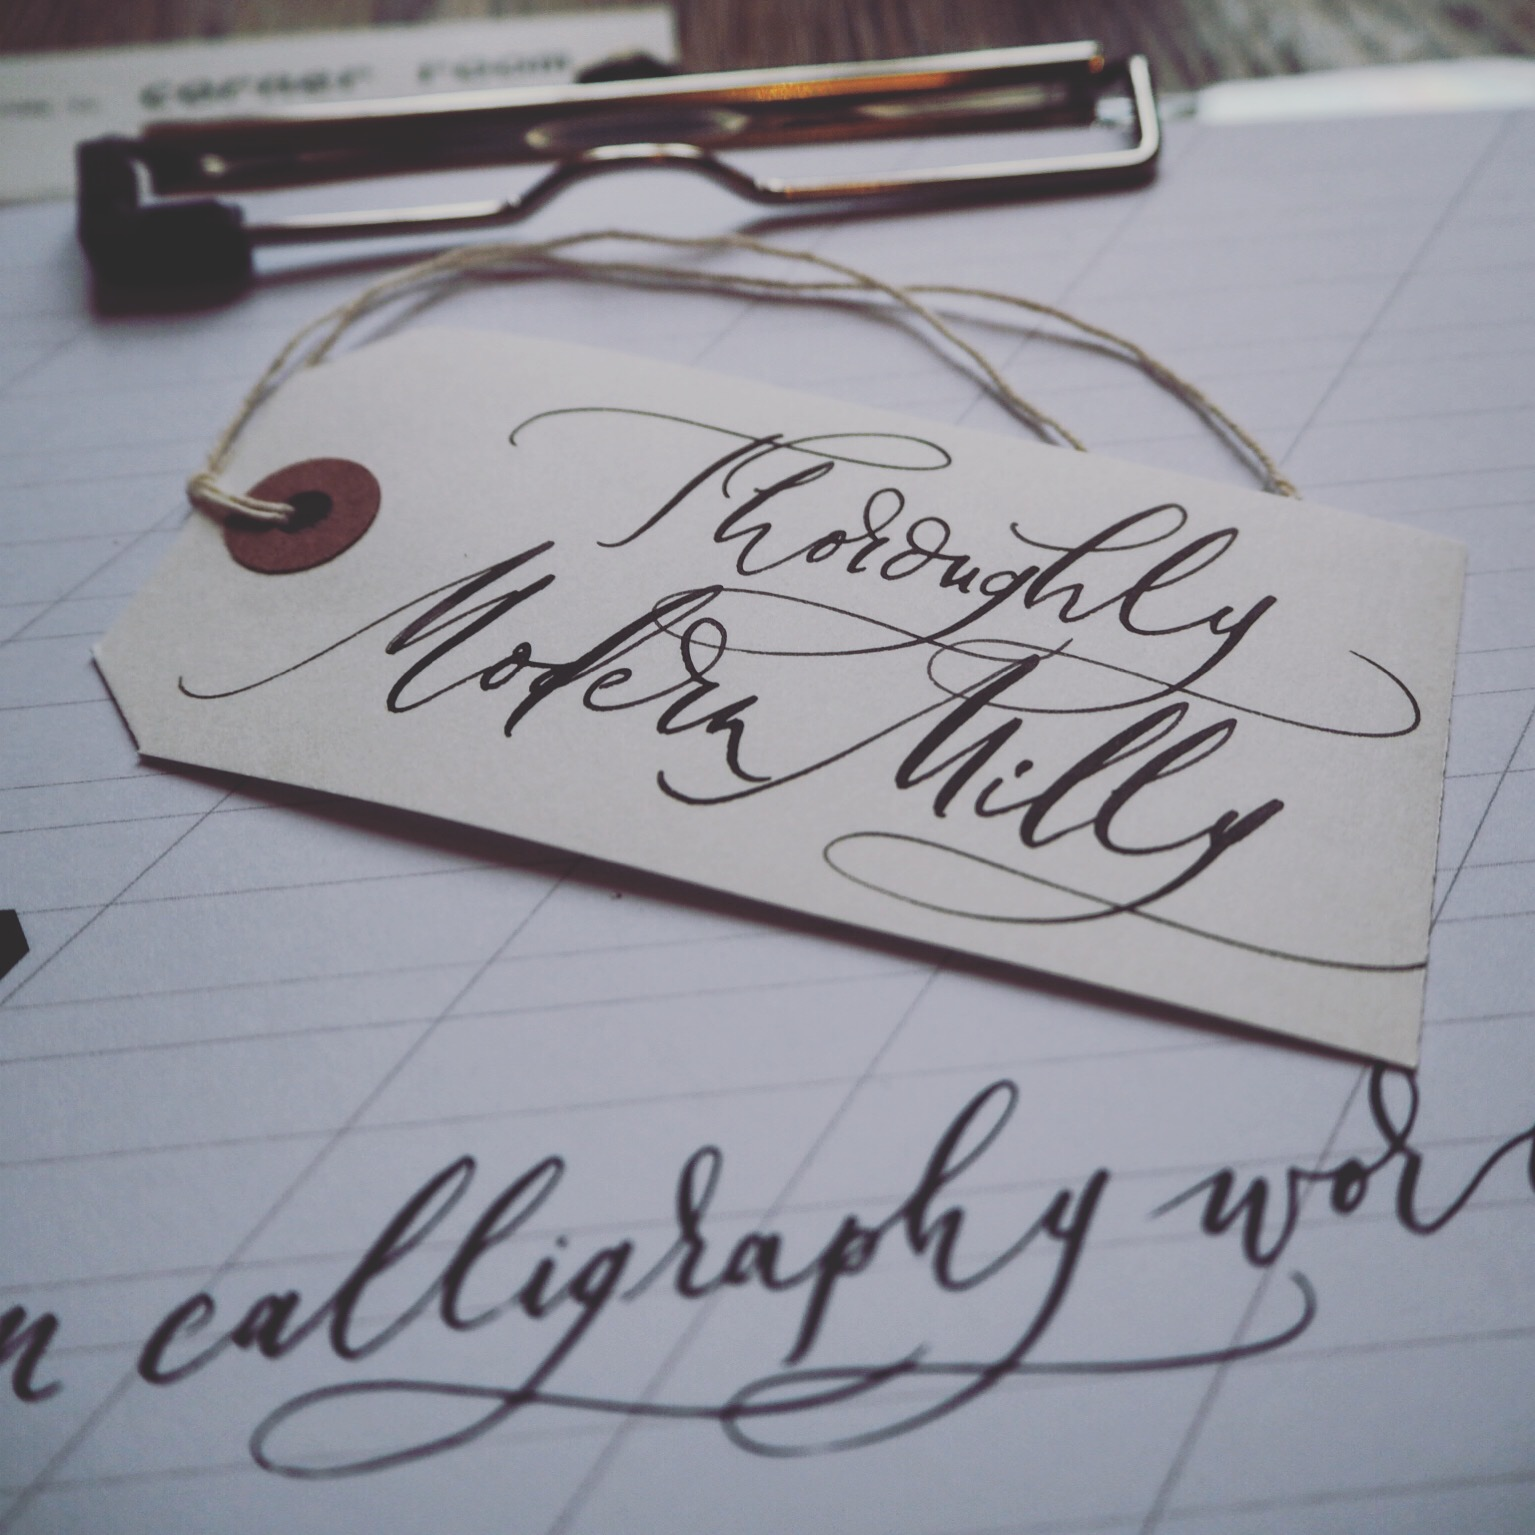 Modern calligraphy workshop thoroughly milly